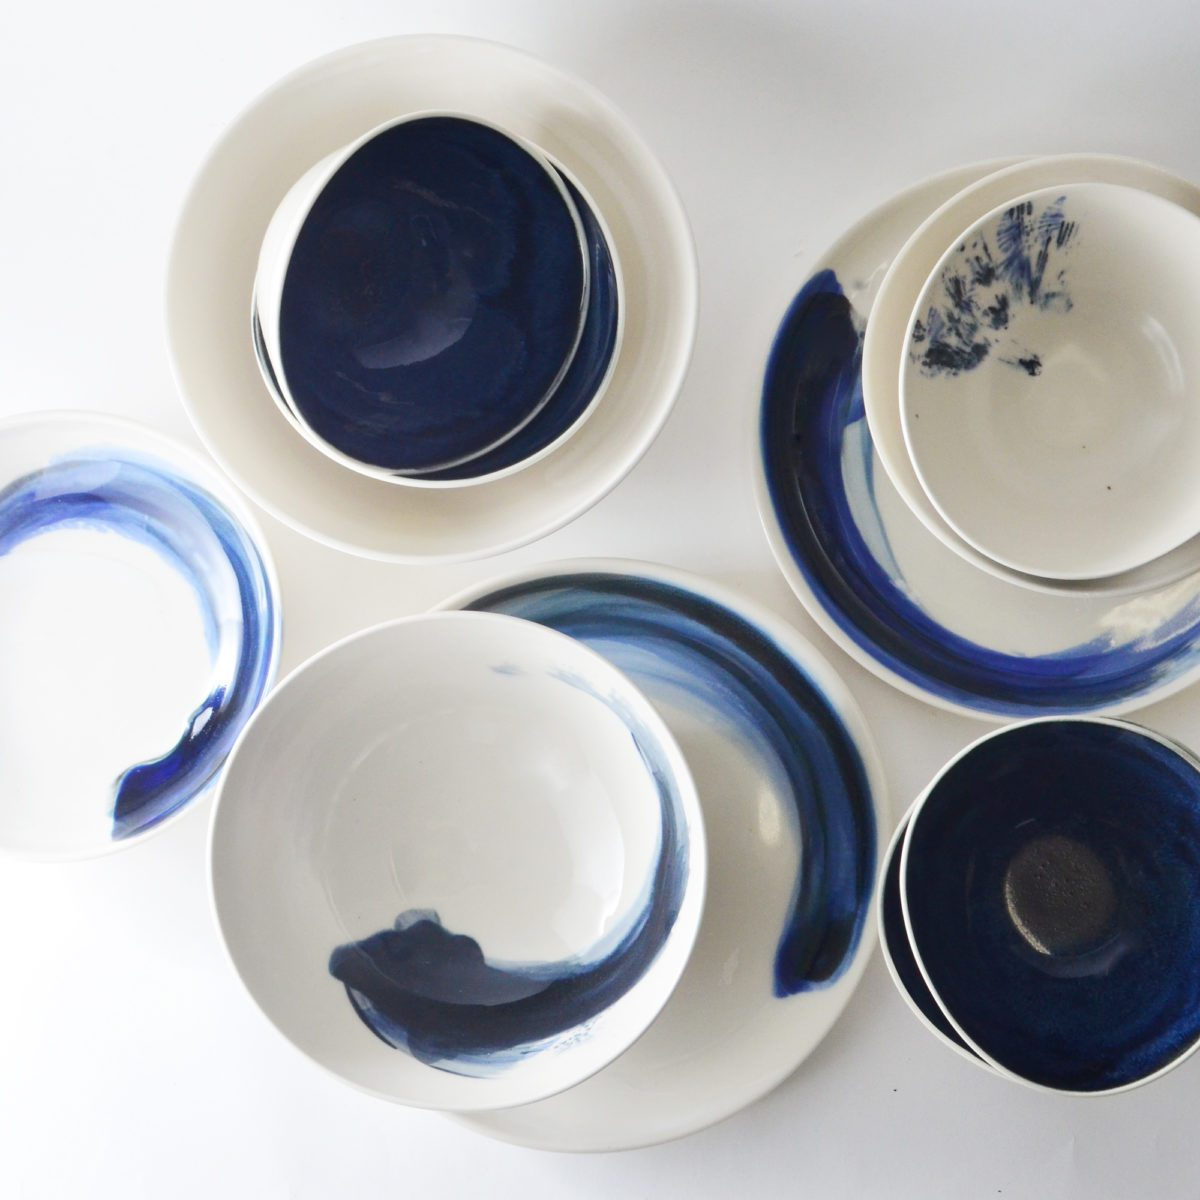 Studio Joo Indigo Platter dish entertaining indulge in the pursuit